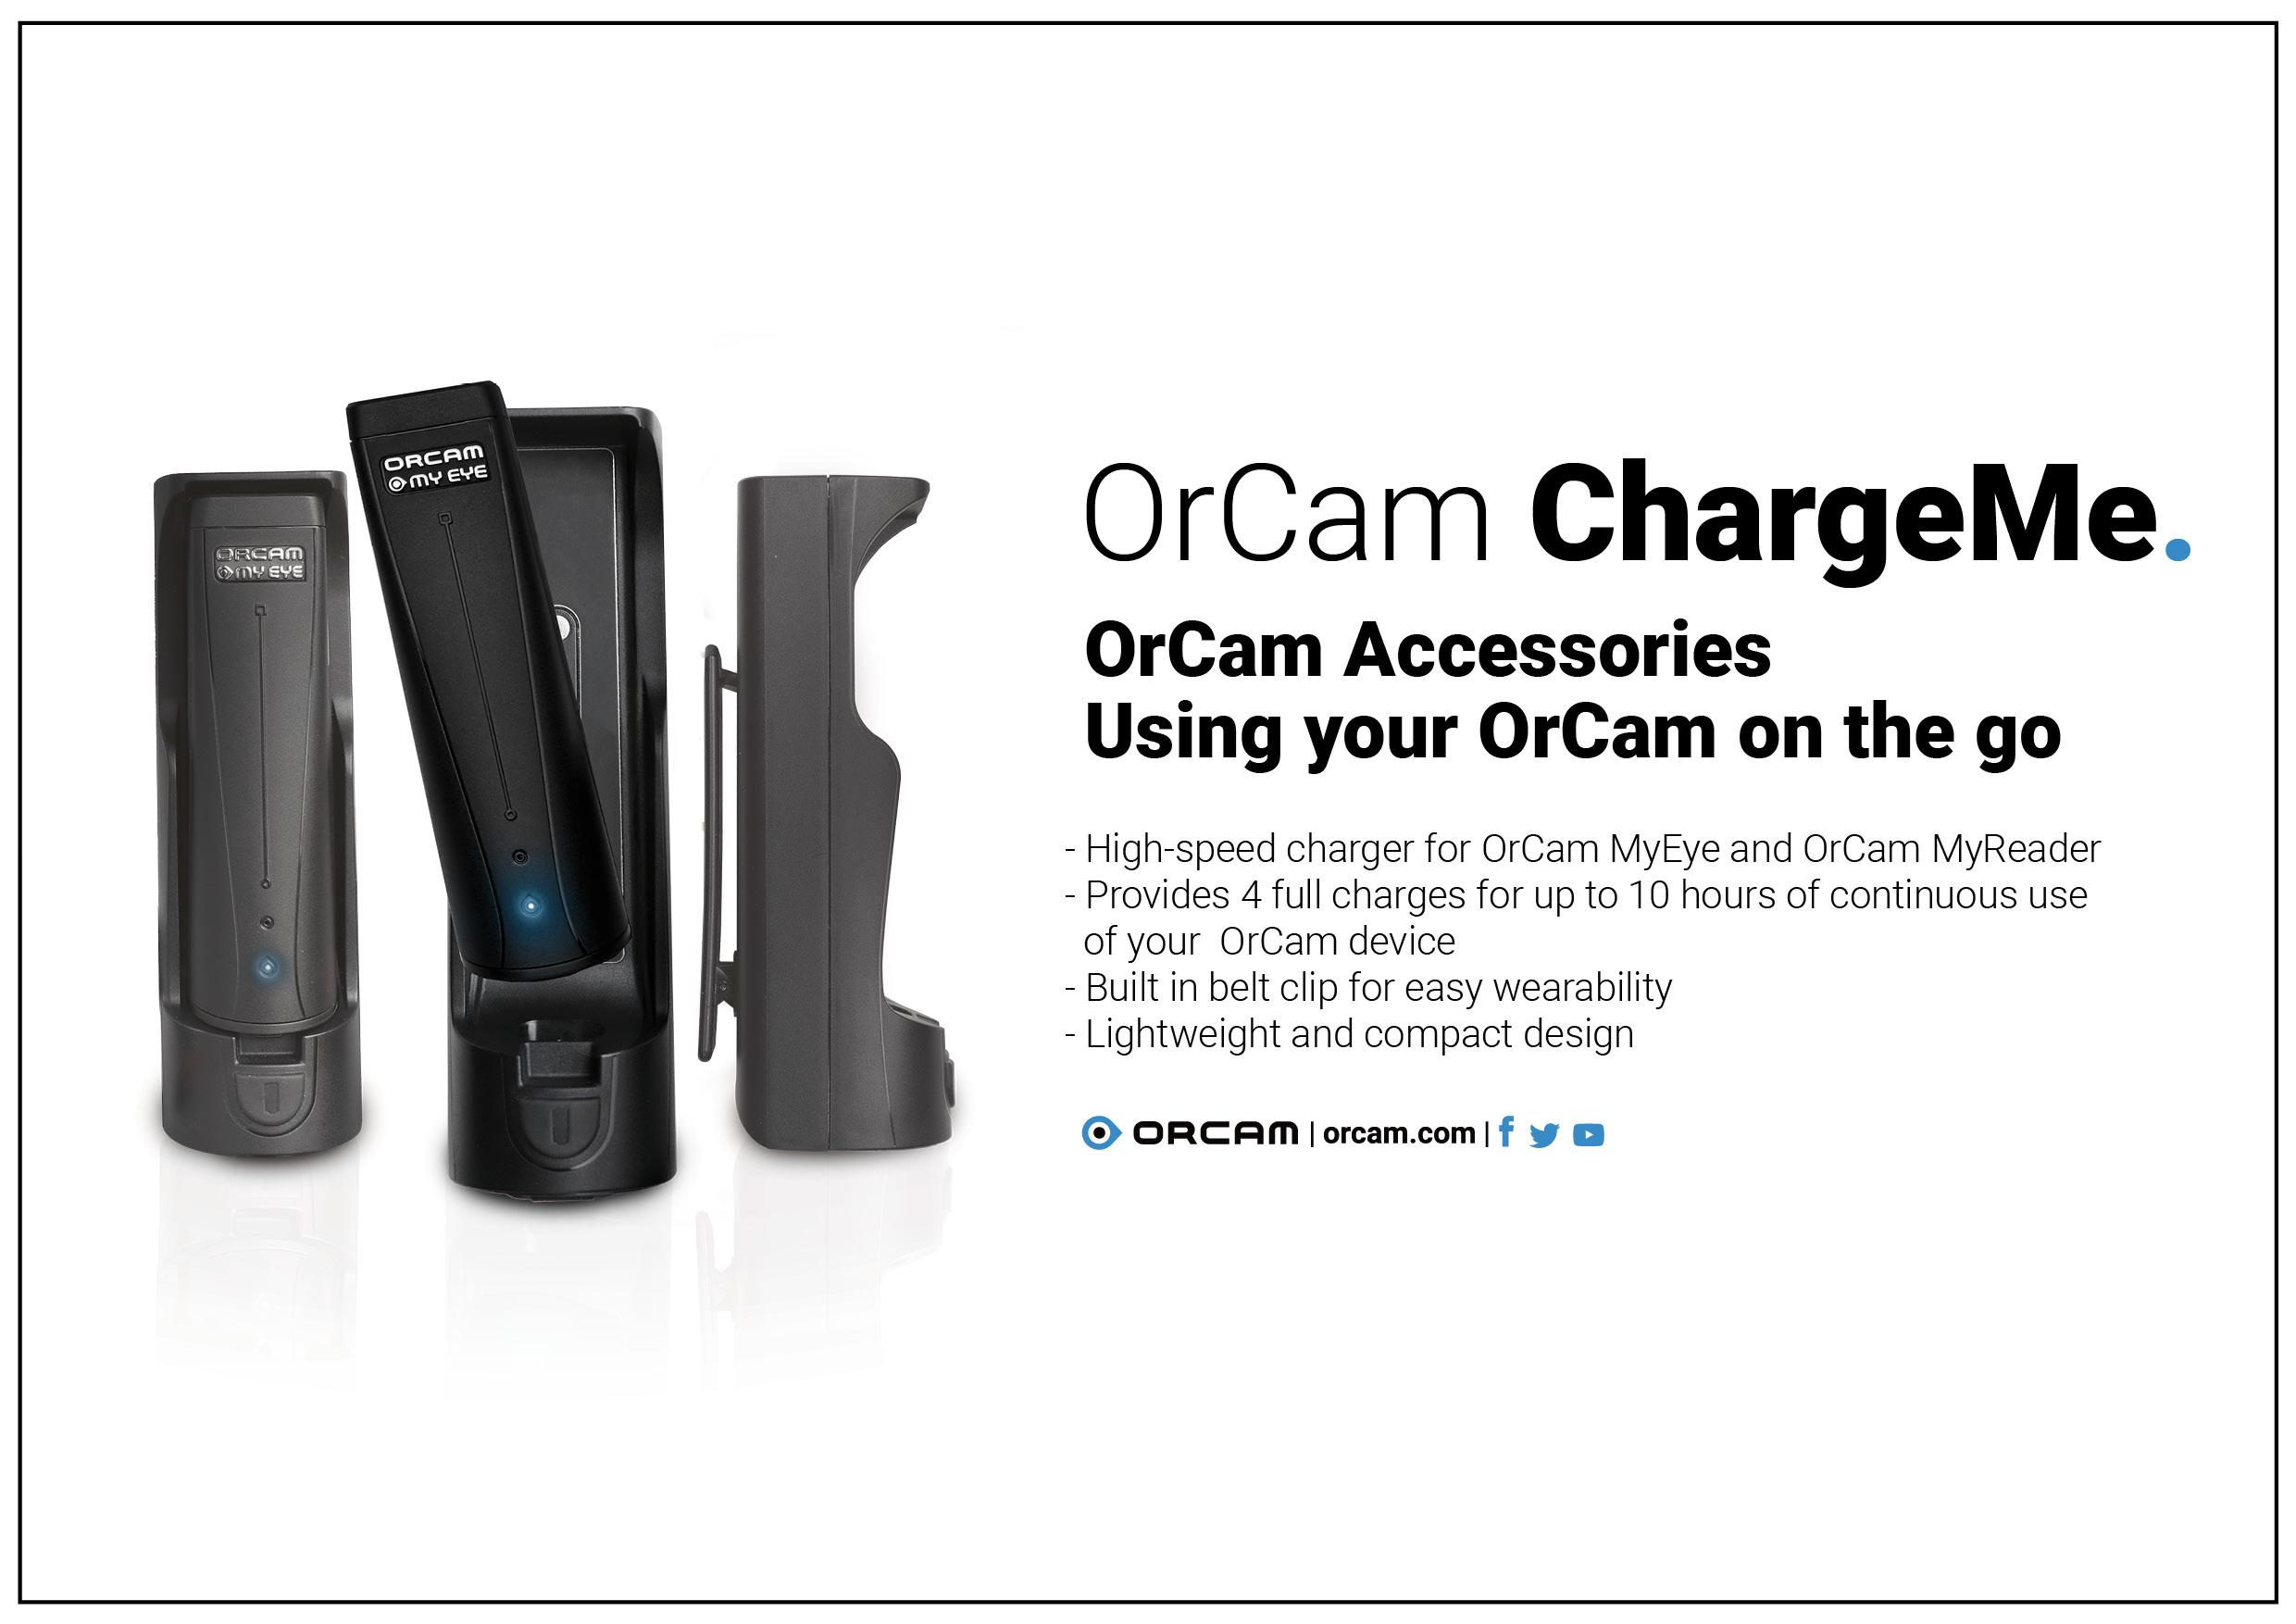 OrCam ChargeMe for using your Orcam on the go